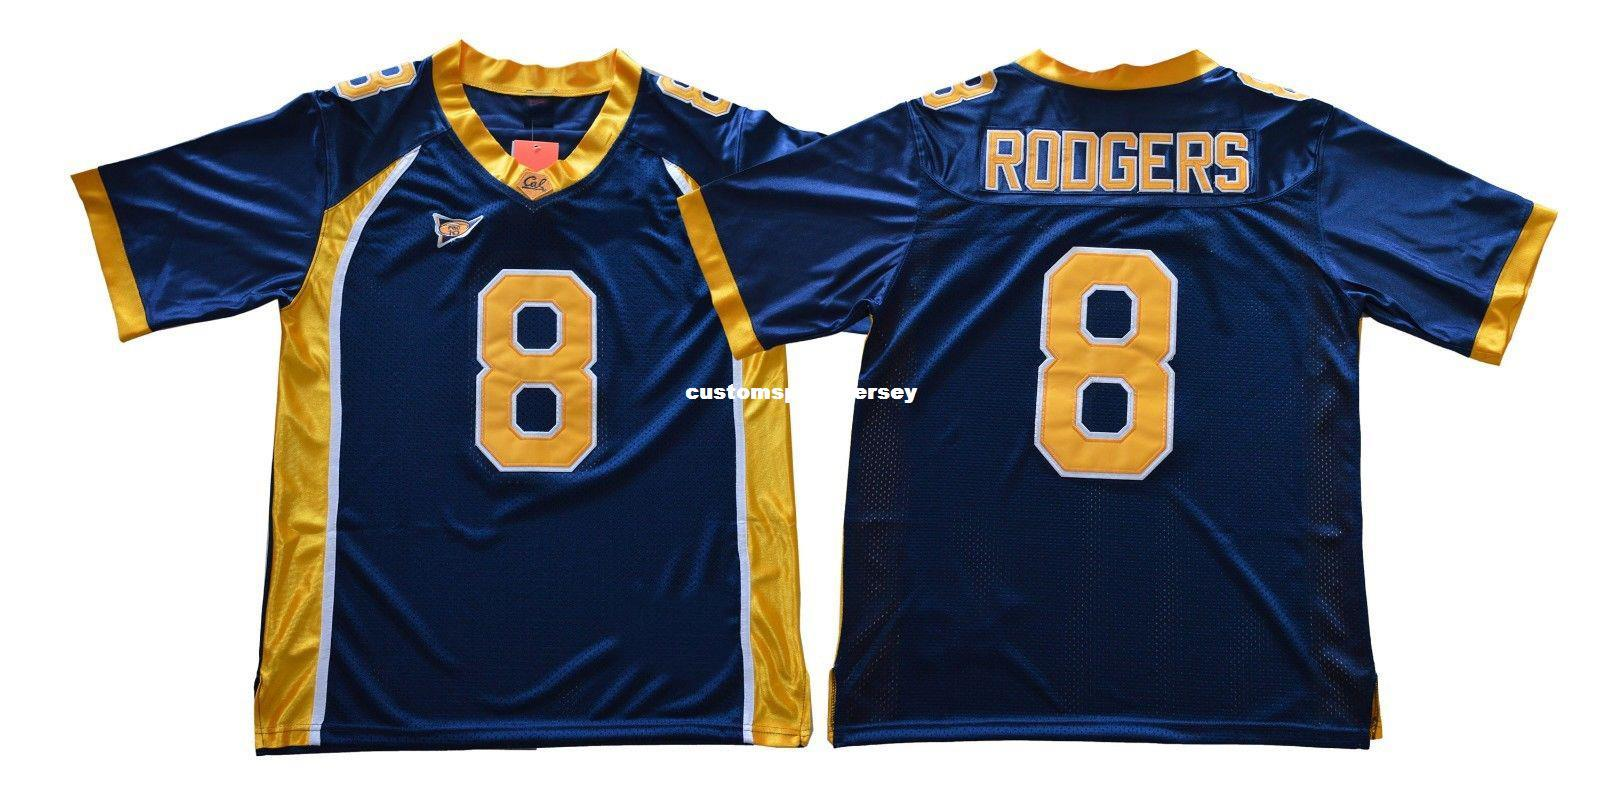 32b04f4bc38 2019 Cheap Custom Aaron Rodgers Jersey  8 California Golden Bears Football  Jersey Stitched Customize Any Number Name MEN WOMEN YOUTH XS 5XL From ...